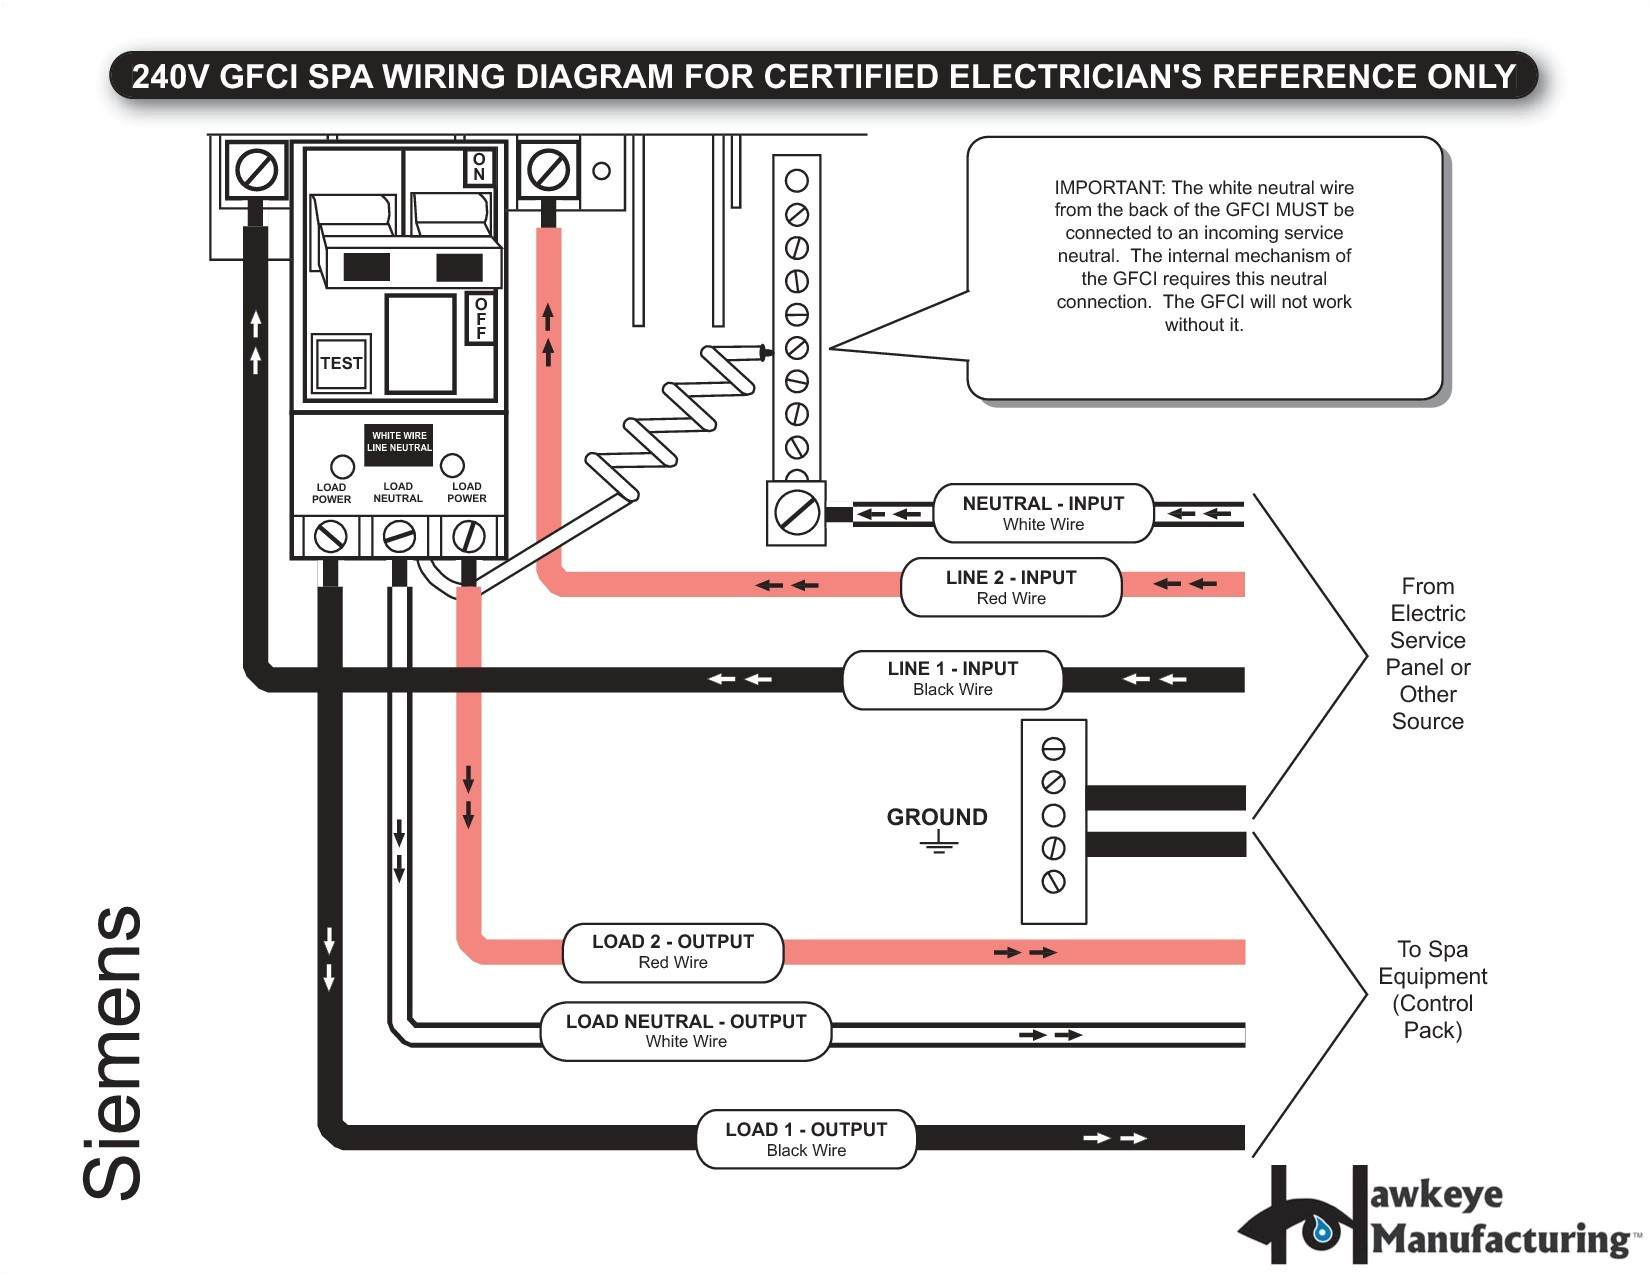 3 wire grounding diagram wiring diagram world 3 pole 4 wire wiring diagram